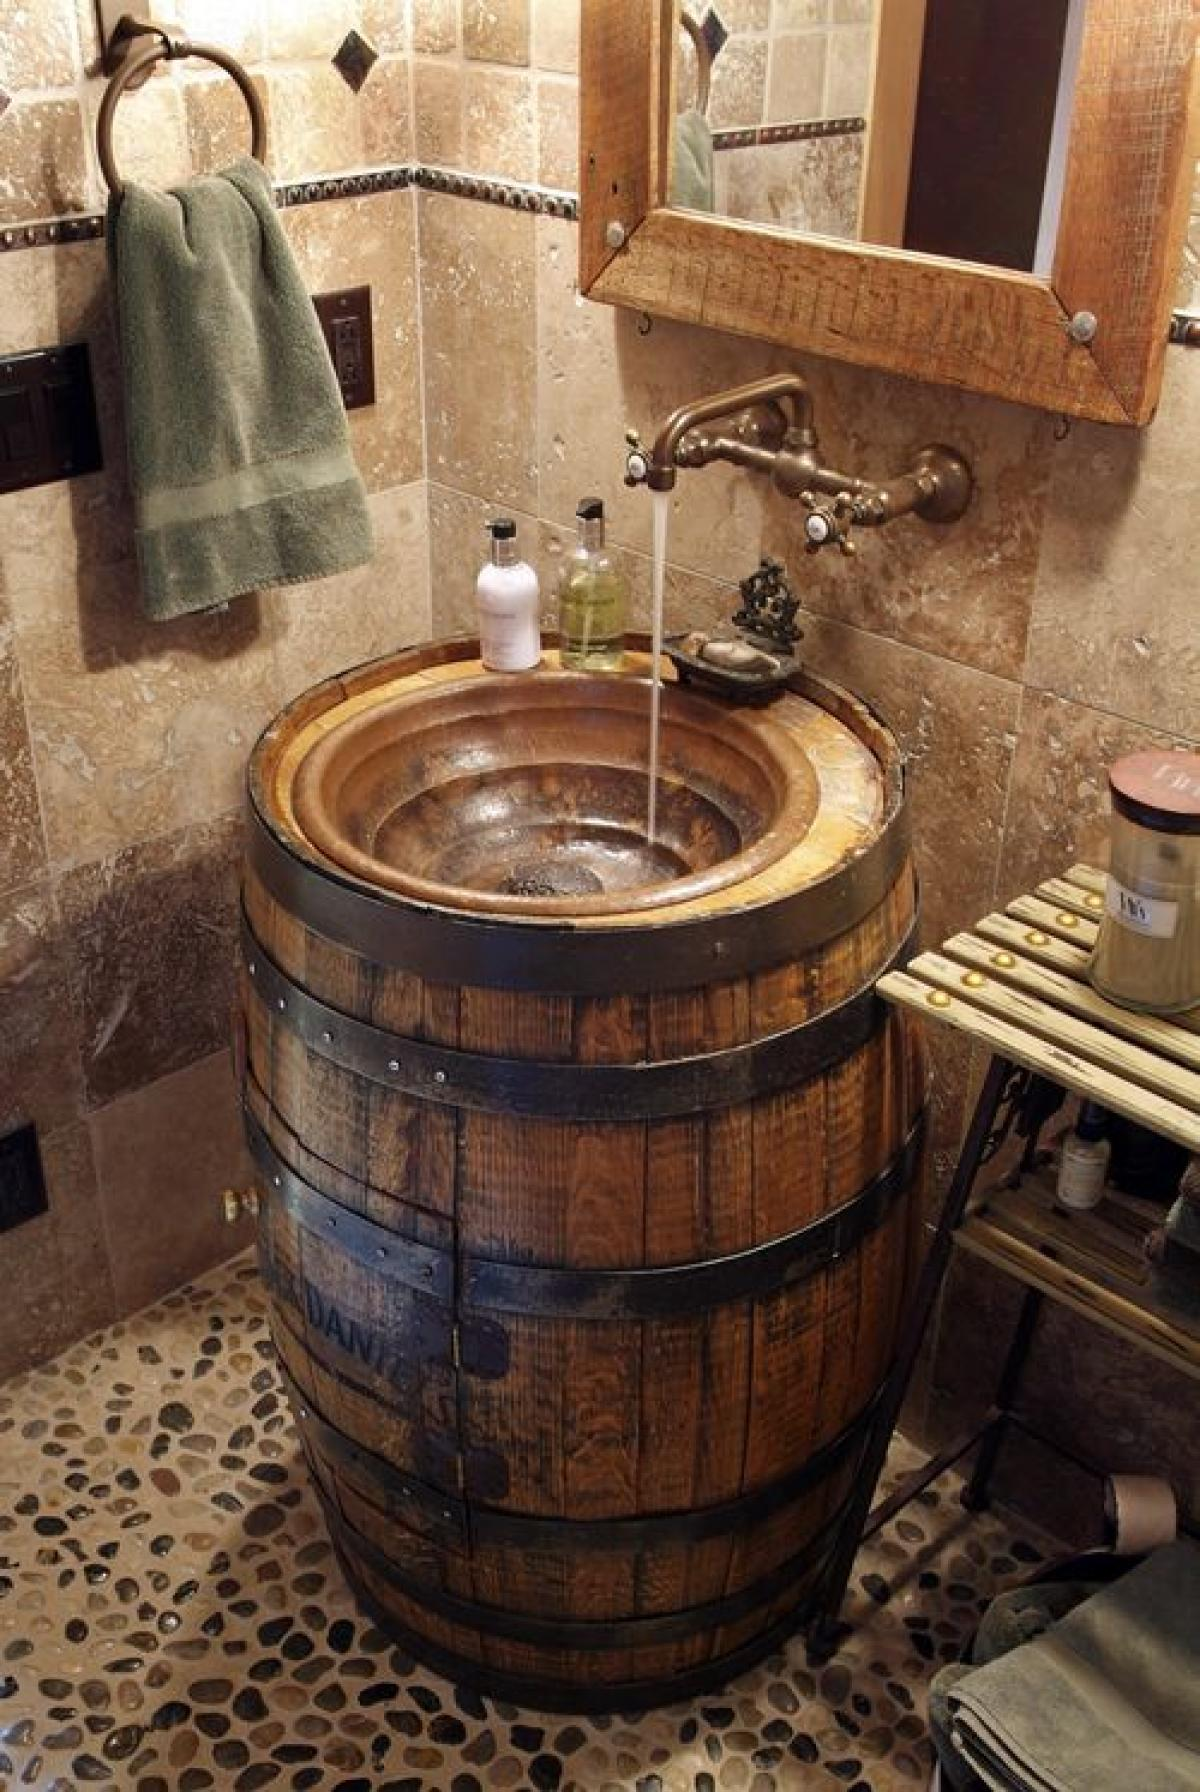 12 converted whiskey barrel sink - Bathroom Ideas Rustic